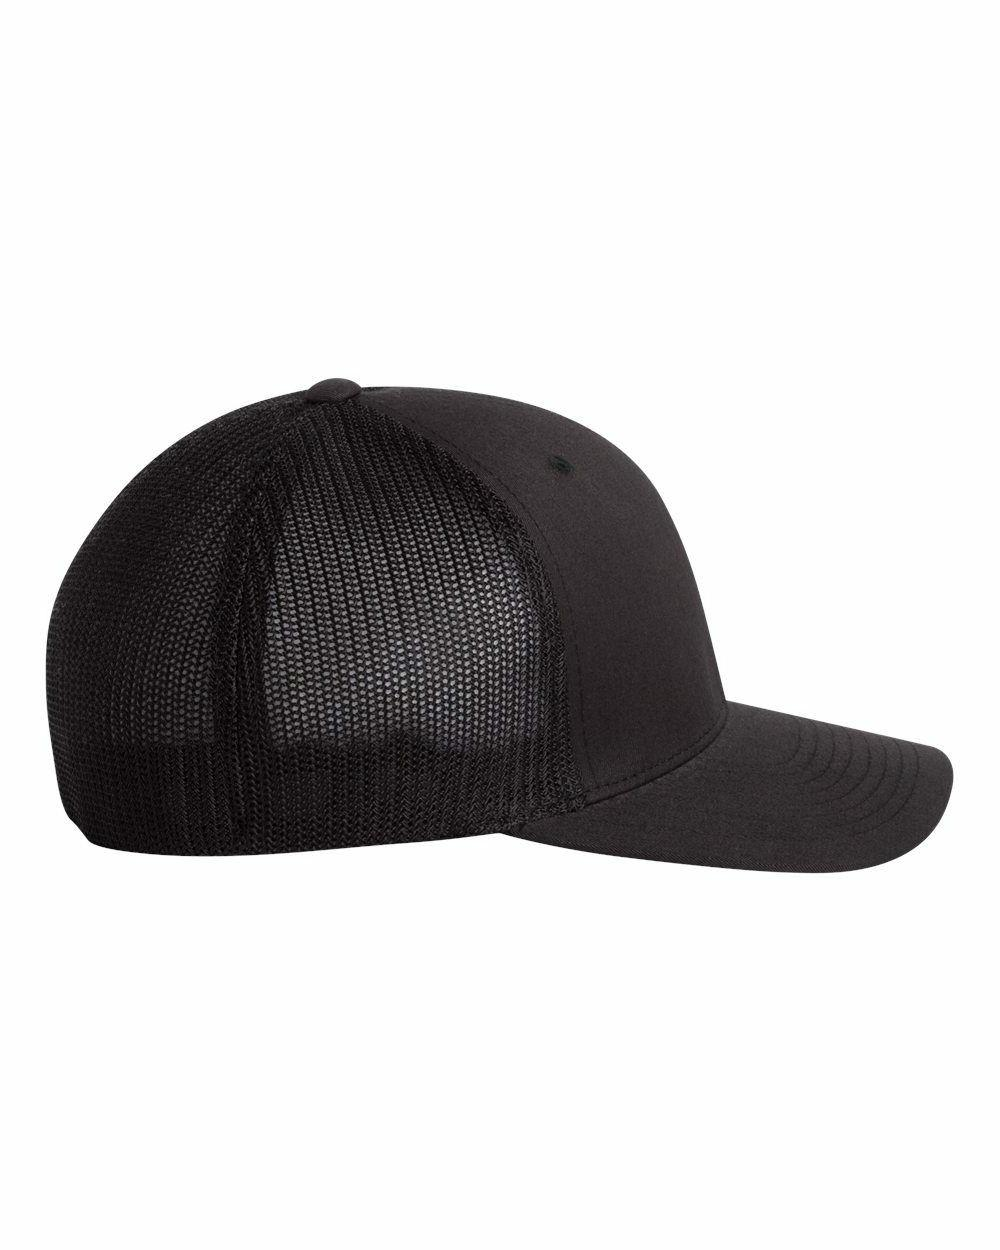 CHEVY Chevrolet FLEXFIT HAT ***FREE in